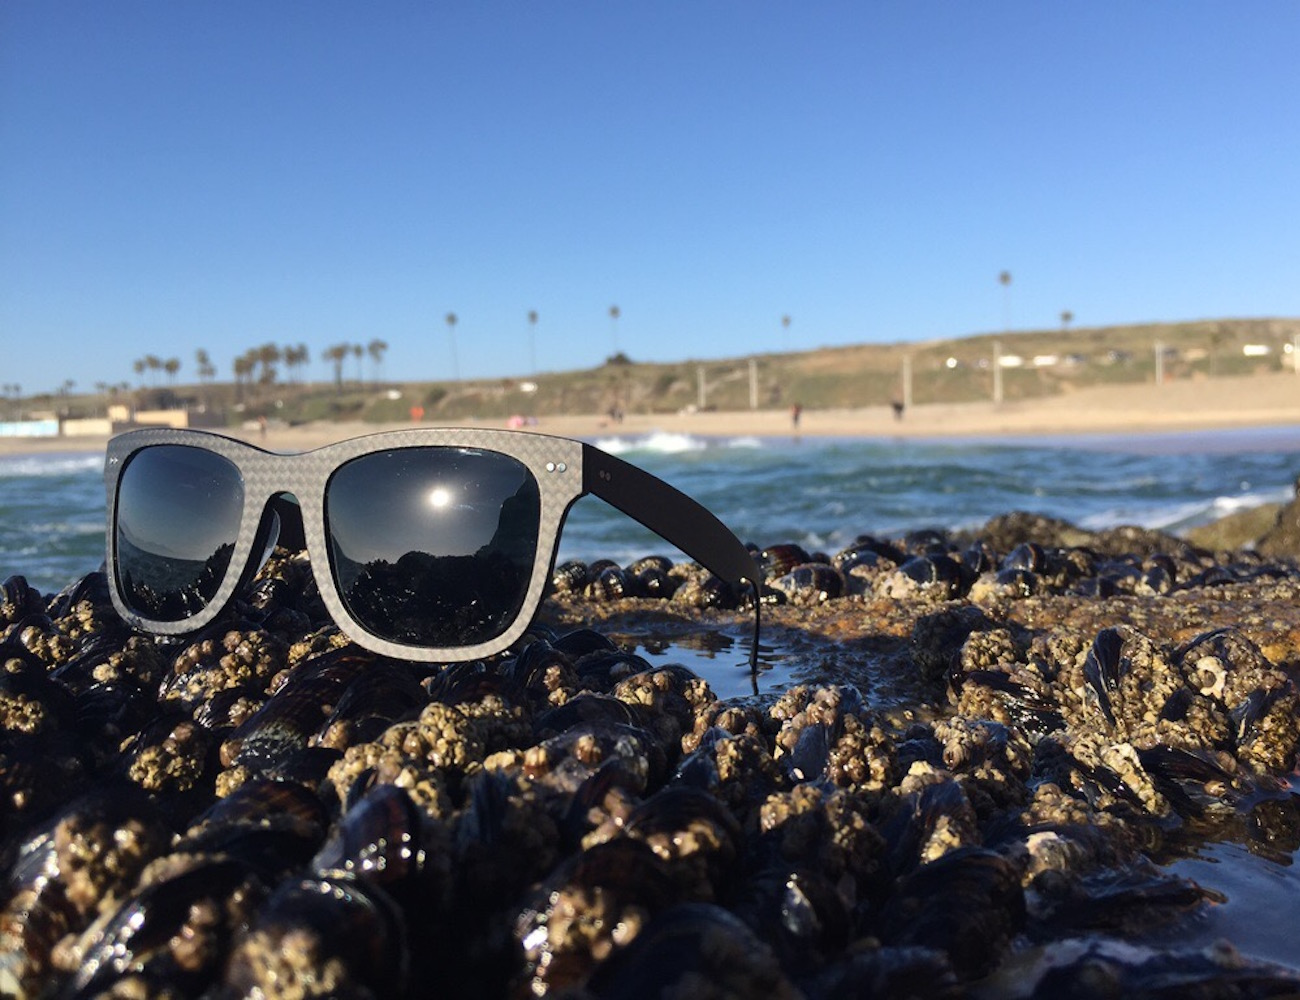 The World's Strongest and Lightest Sunglasses